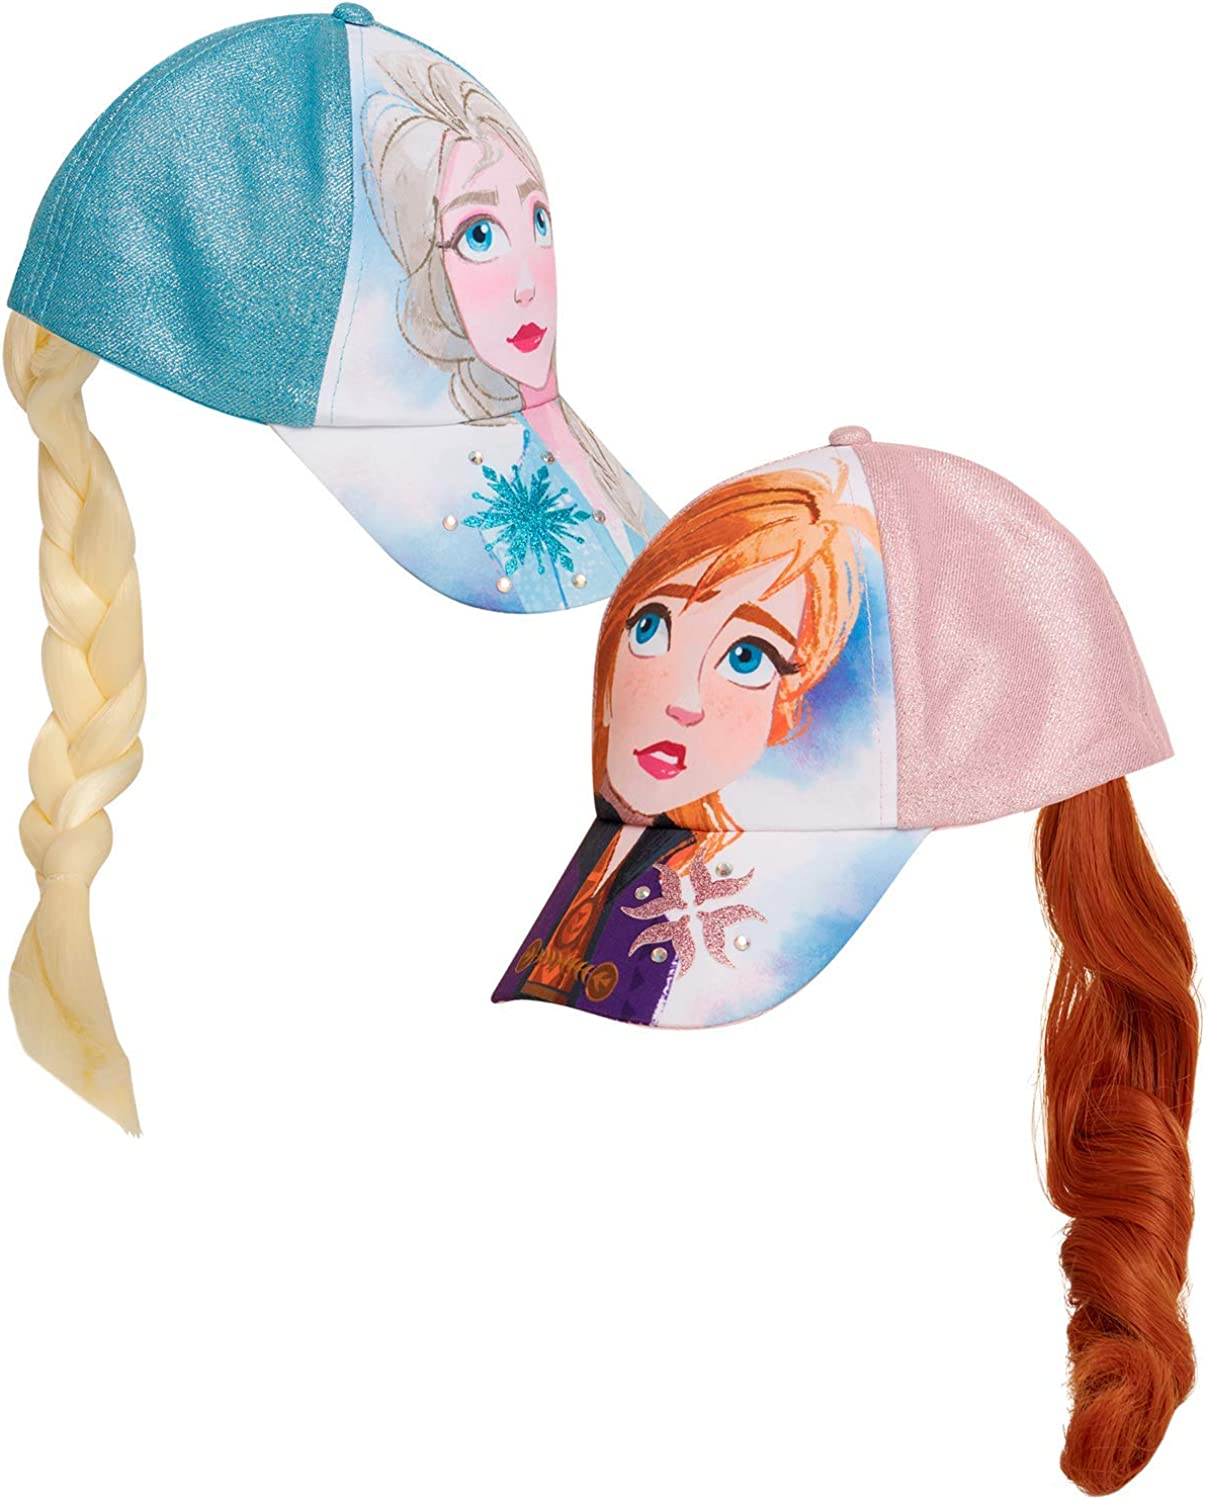 Disney Girls' Frozen Baseball Caps - 2 Pack Elsa and Anna Glitter Hat with Faux Ponytail Set (Ages 4-7), Size Age 4-7, Elsa/Anna Ponytail Cap: Clothing